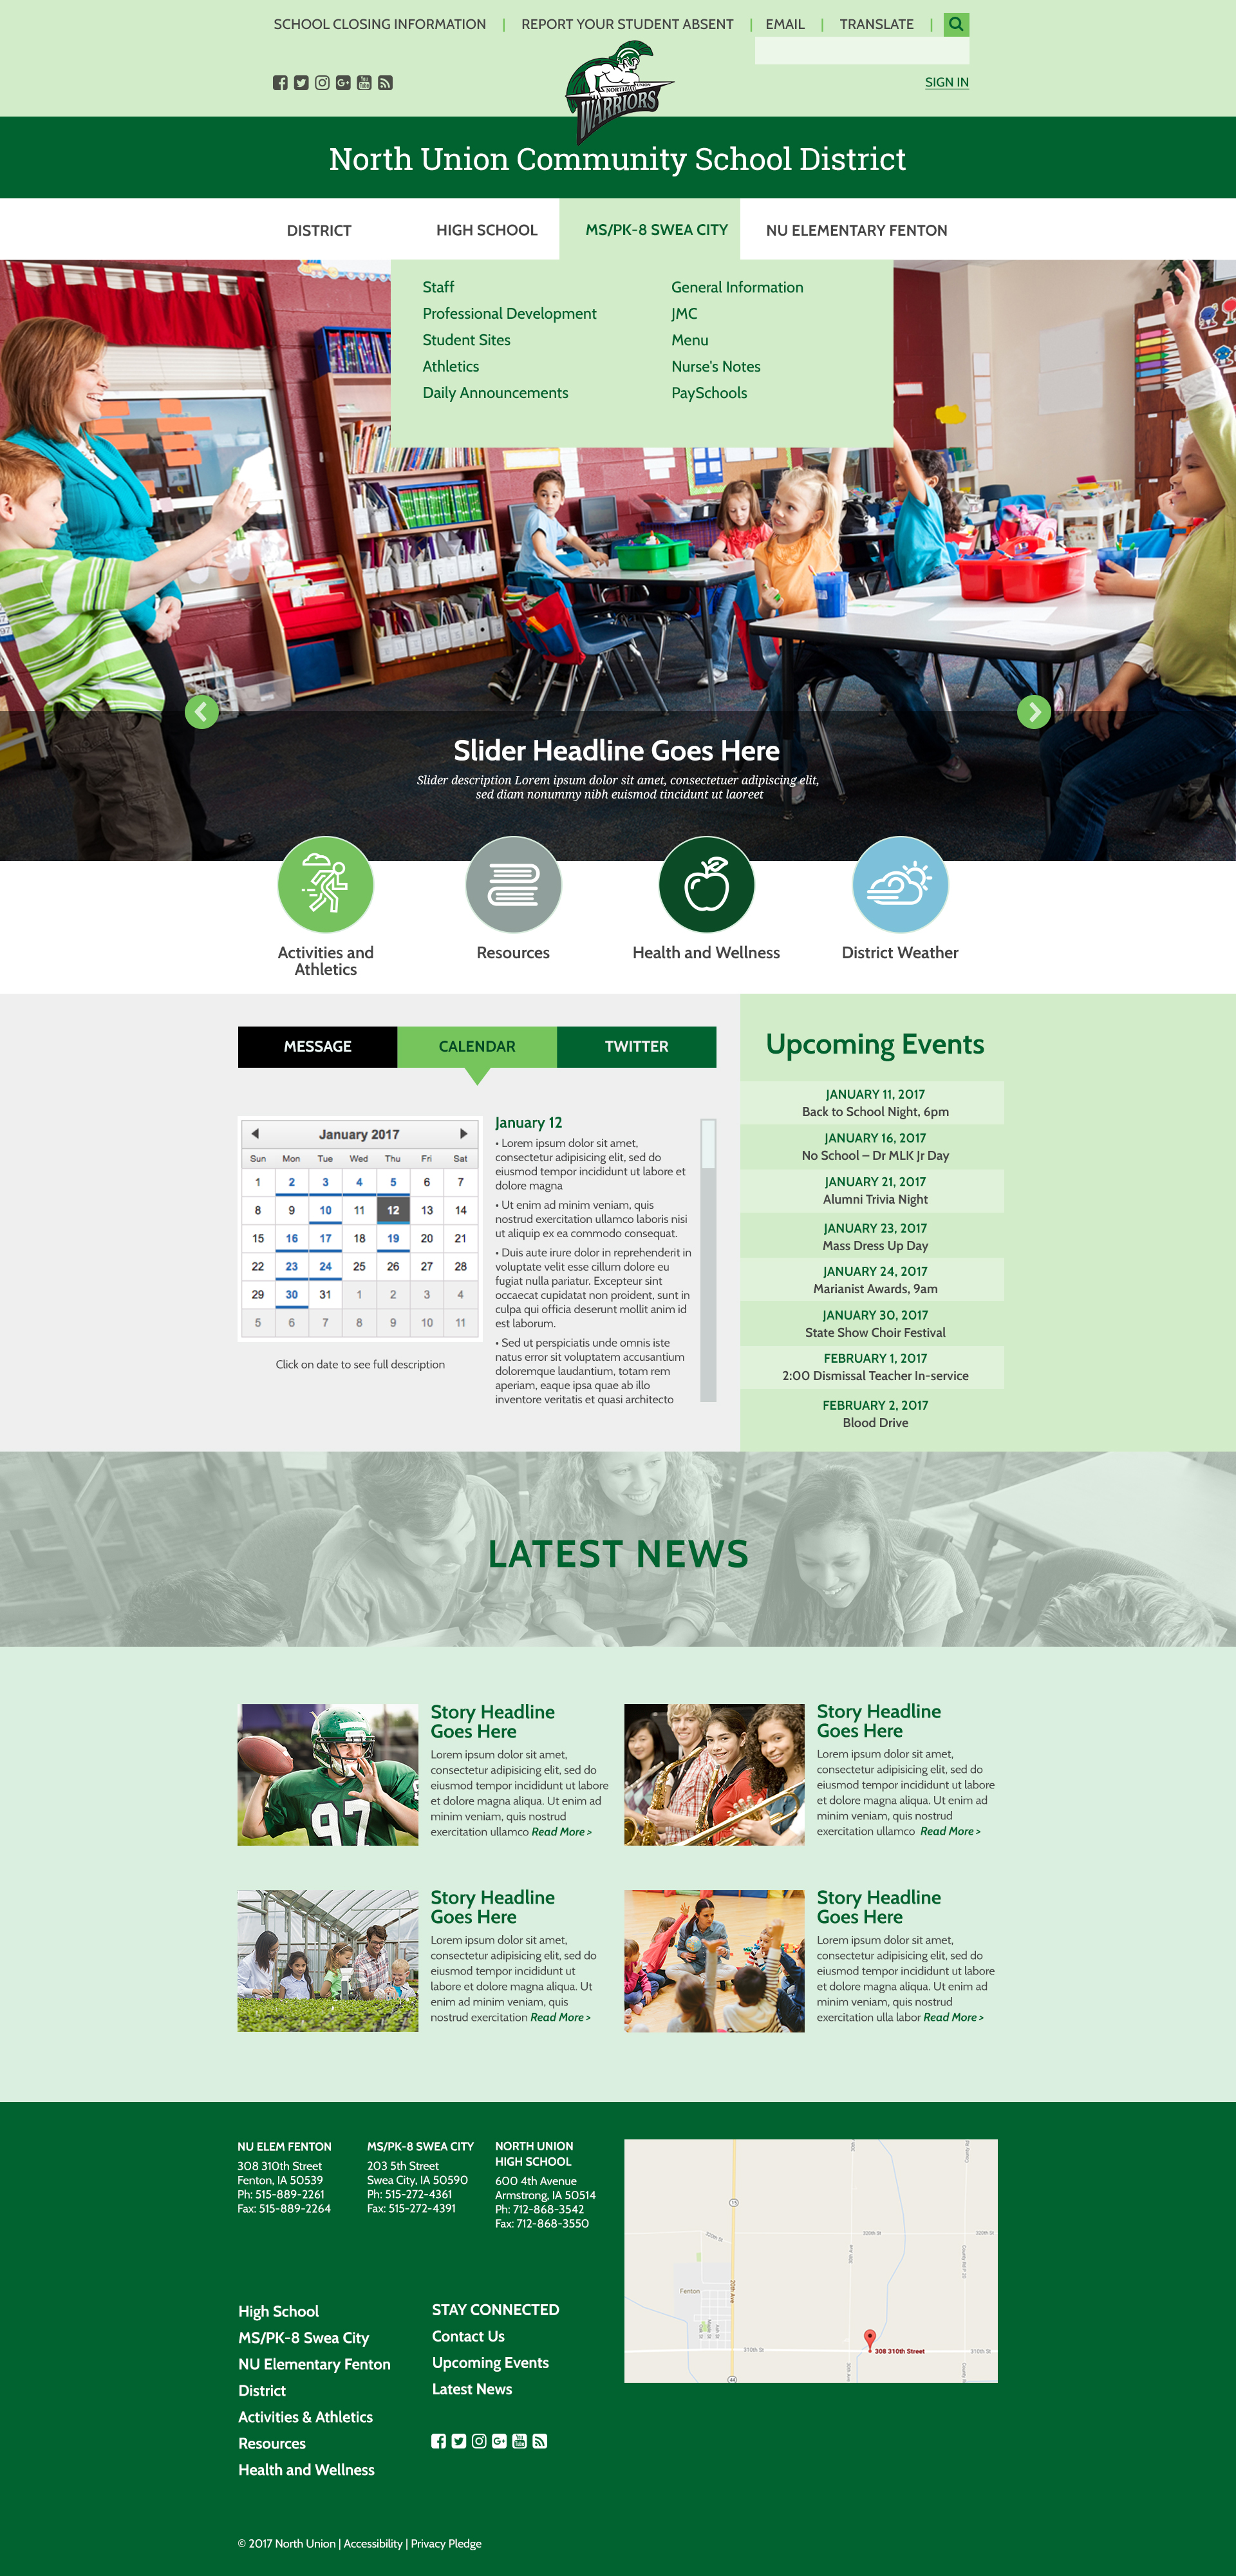 Design #3 - Homepage with Hover